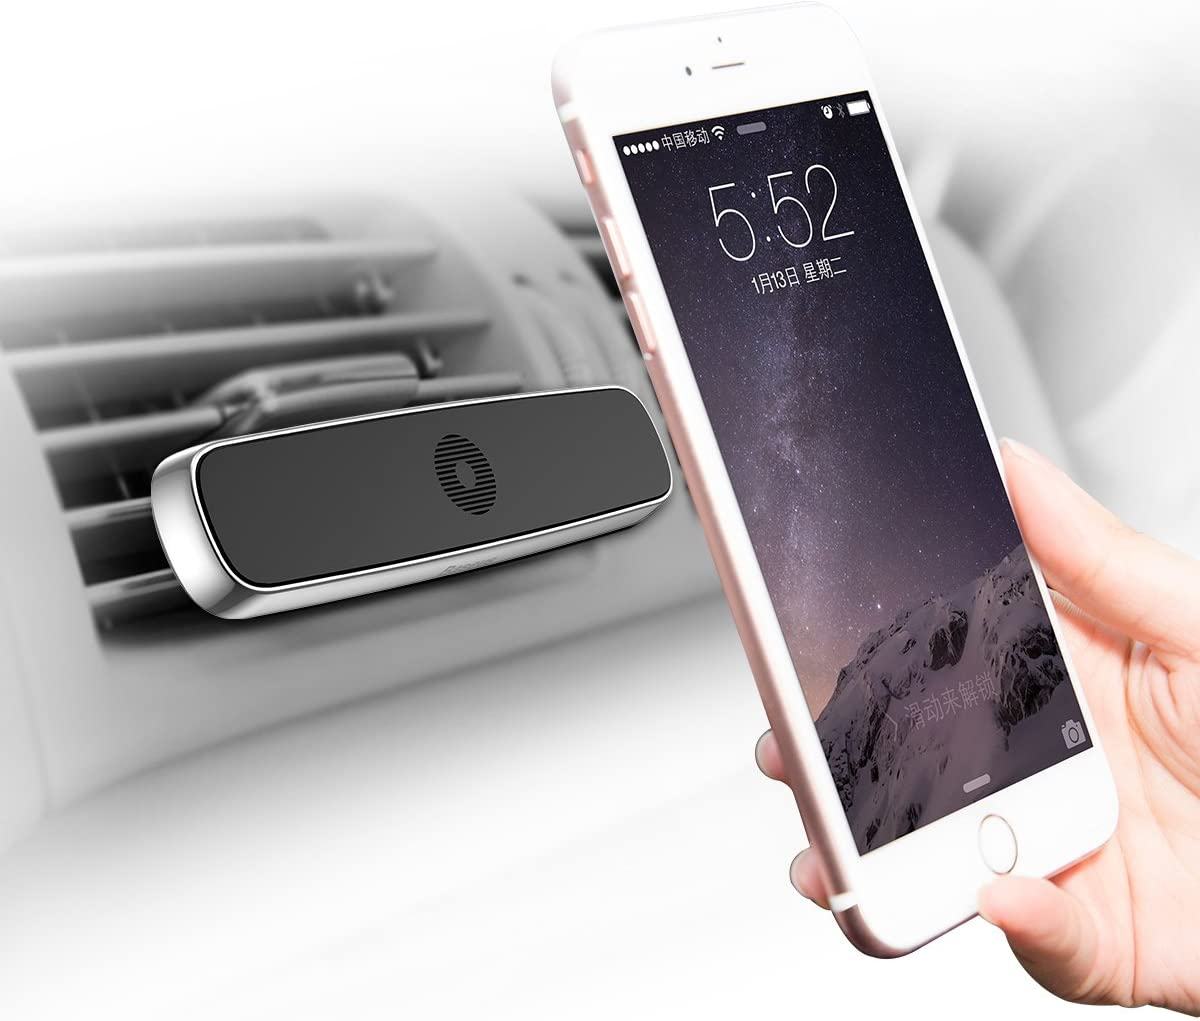 Baseus Car Air Vent Magnetic Mount Phone Double Clip Horizontal Holder Universal Dash Dashboard Mount for iPhone X 8 Plus 7 Plus,Samsung Galaxy Note 8//S8 Plus//S8 Cell Phone Mount